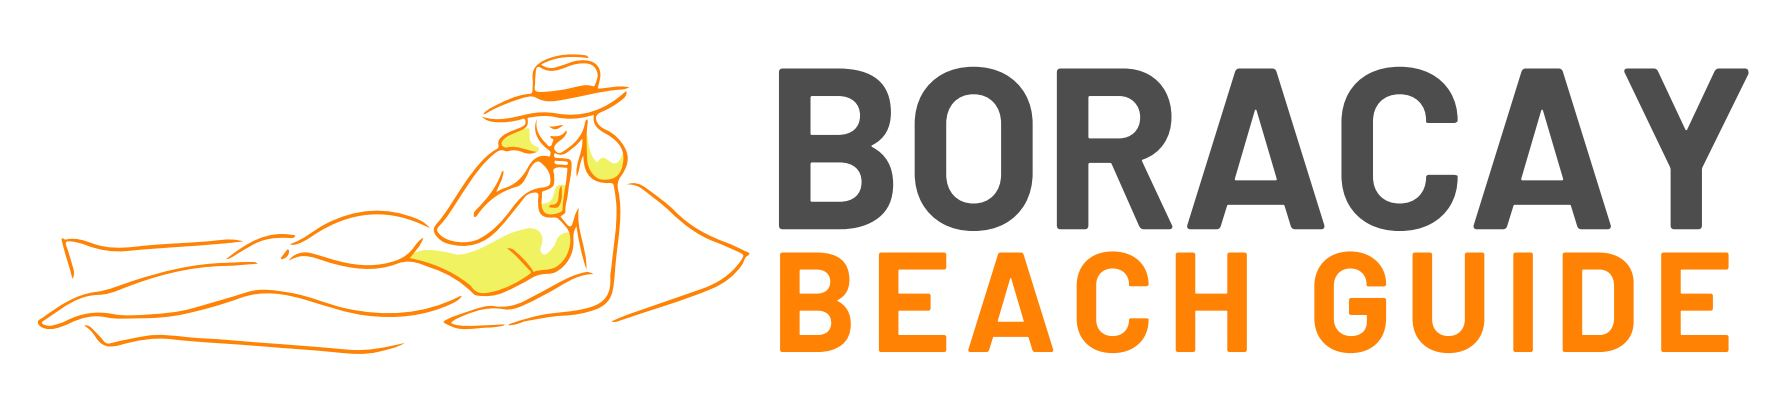 The Boracay Beach Guide | News Feature Archives - Page 4 of 4 -